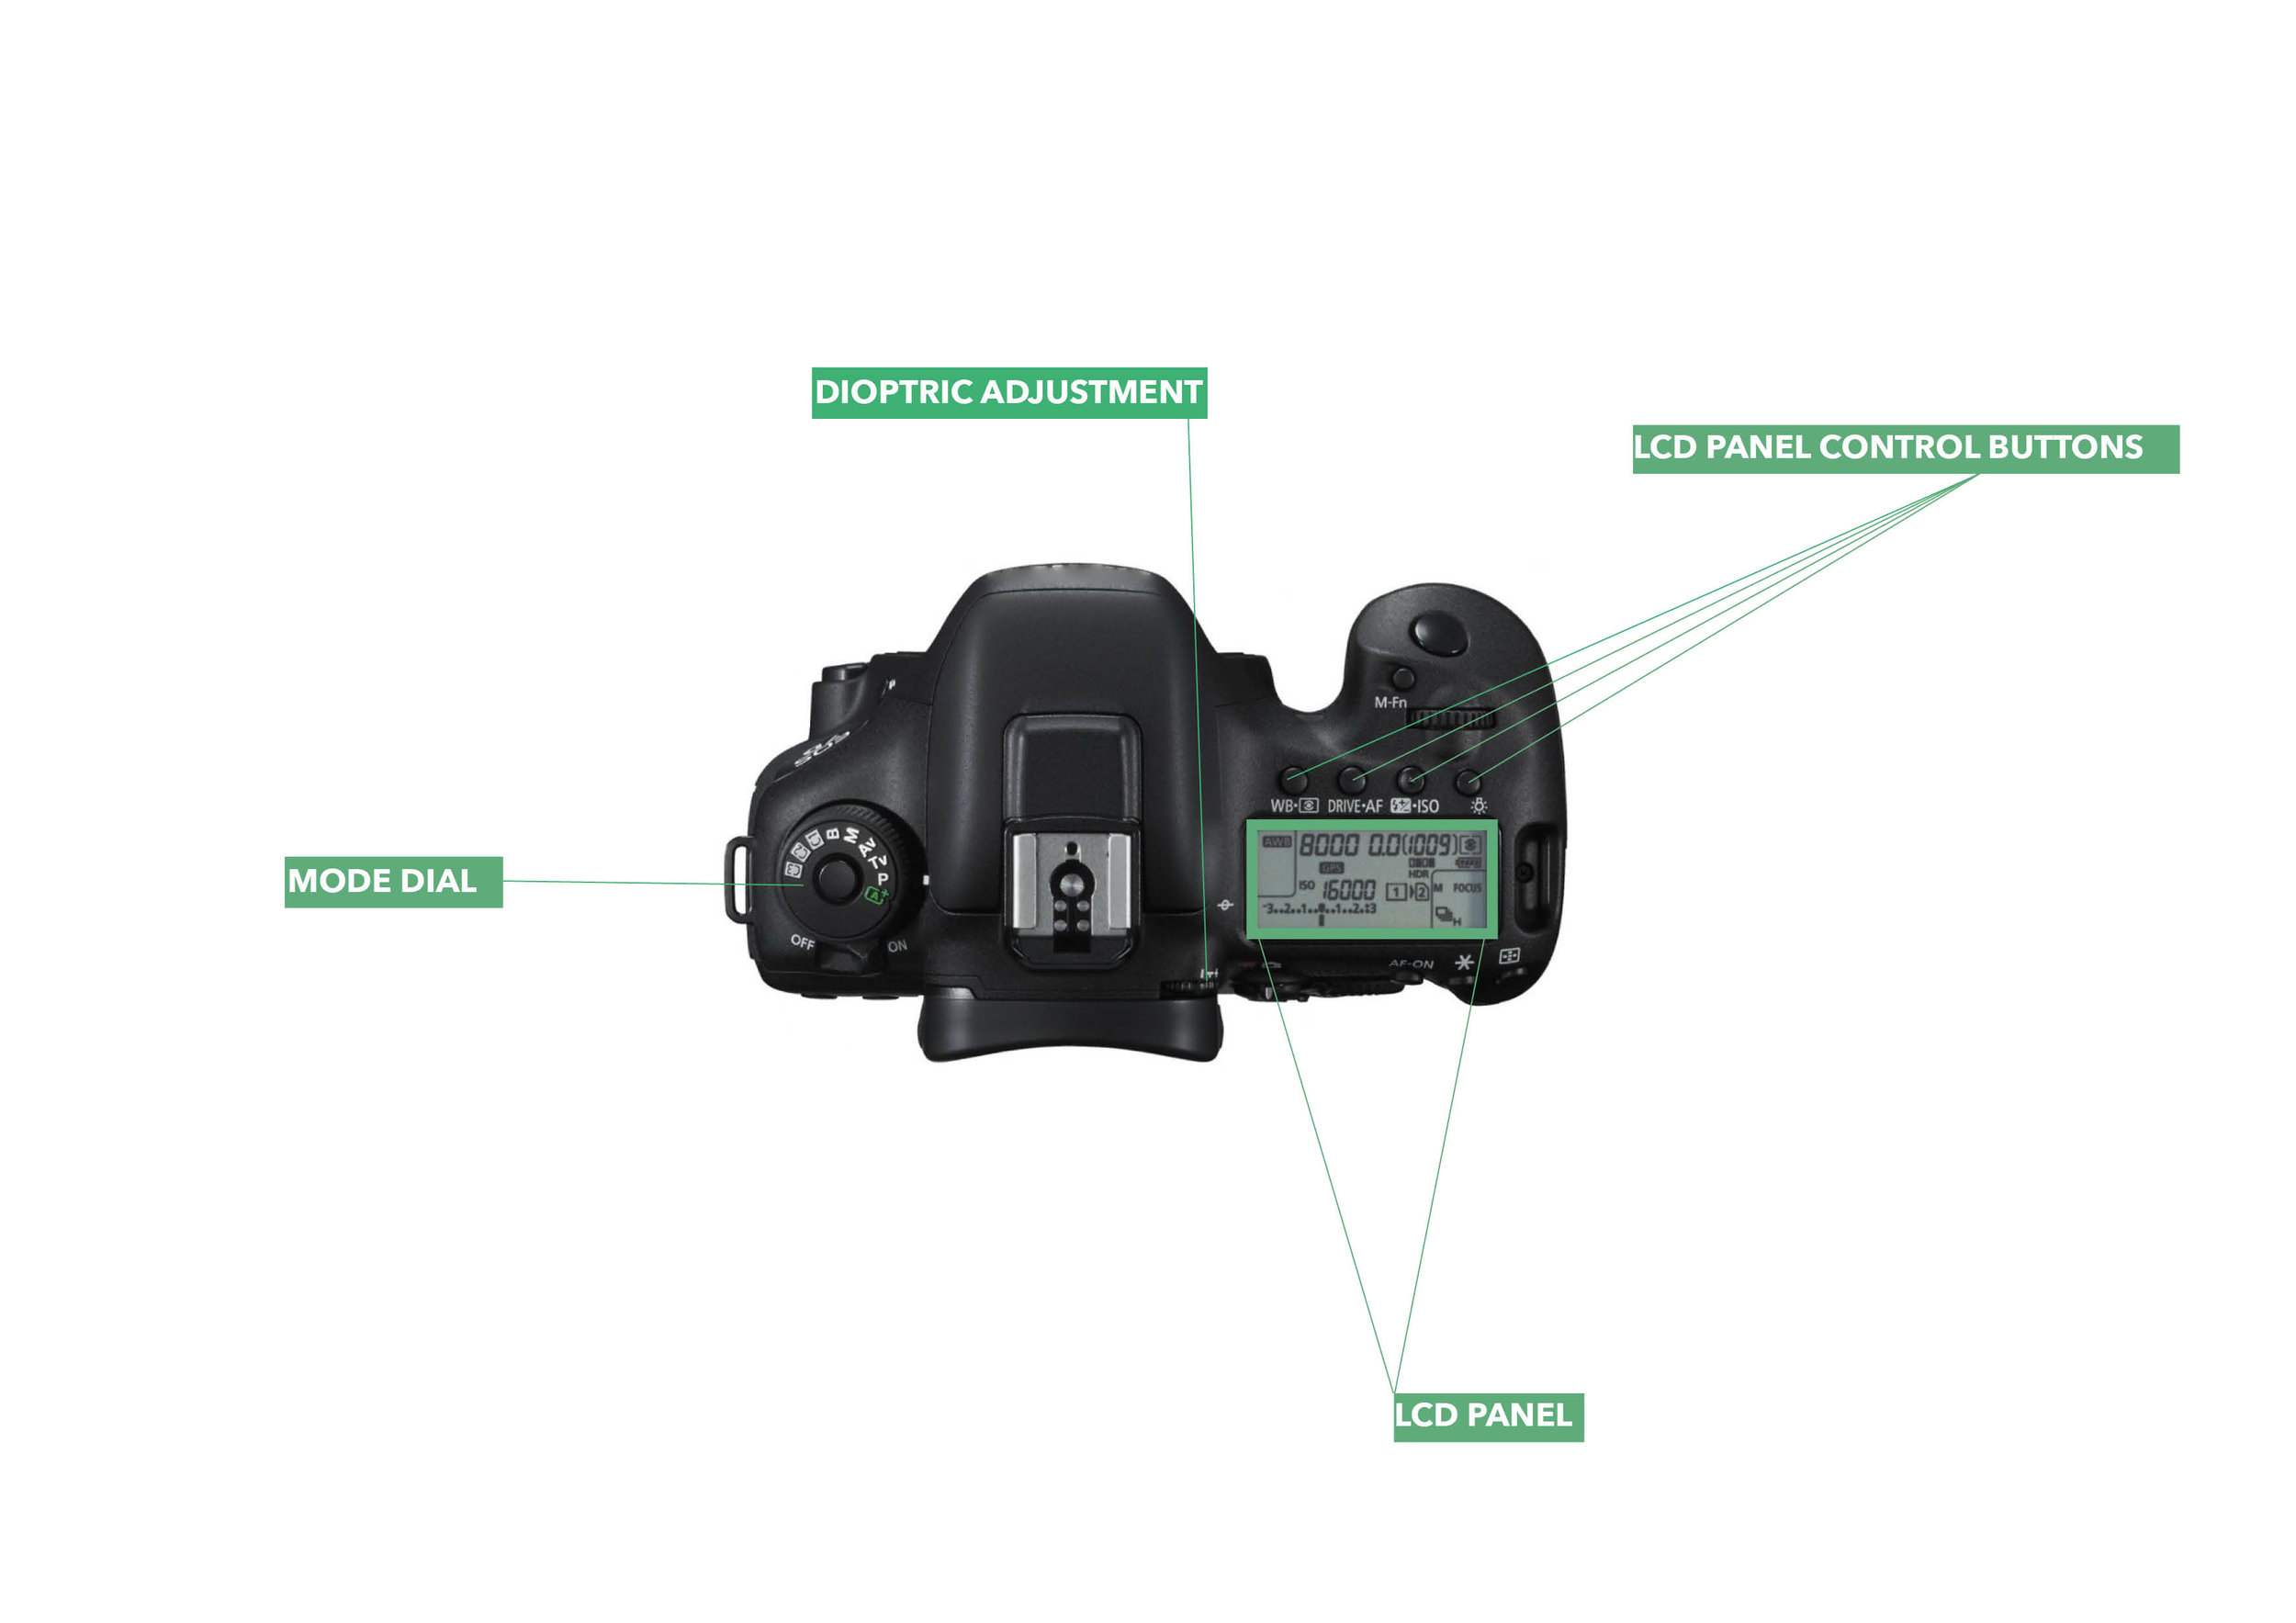 The top view of a DSLR camera